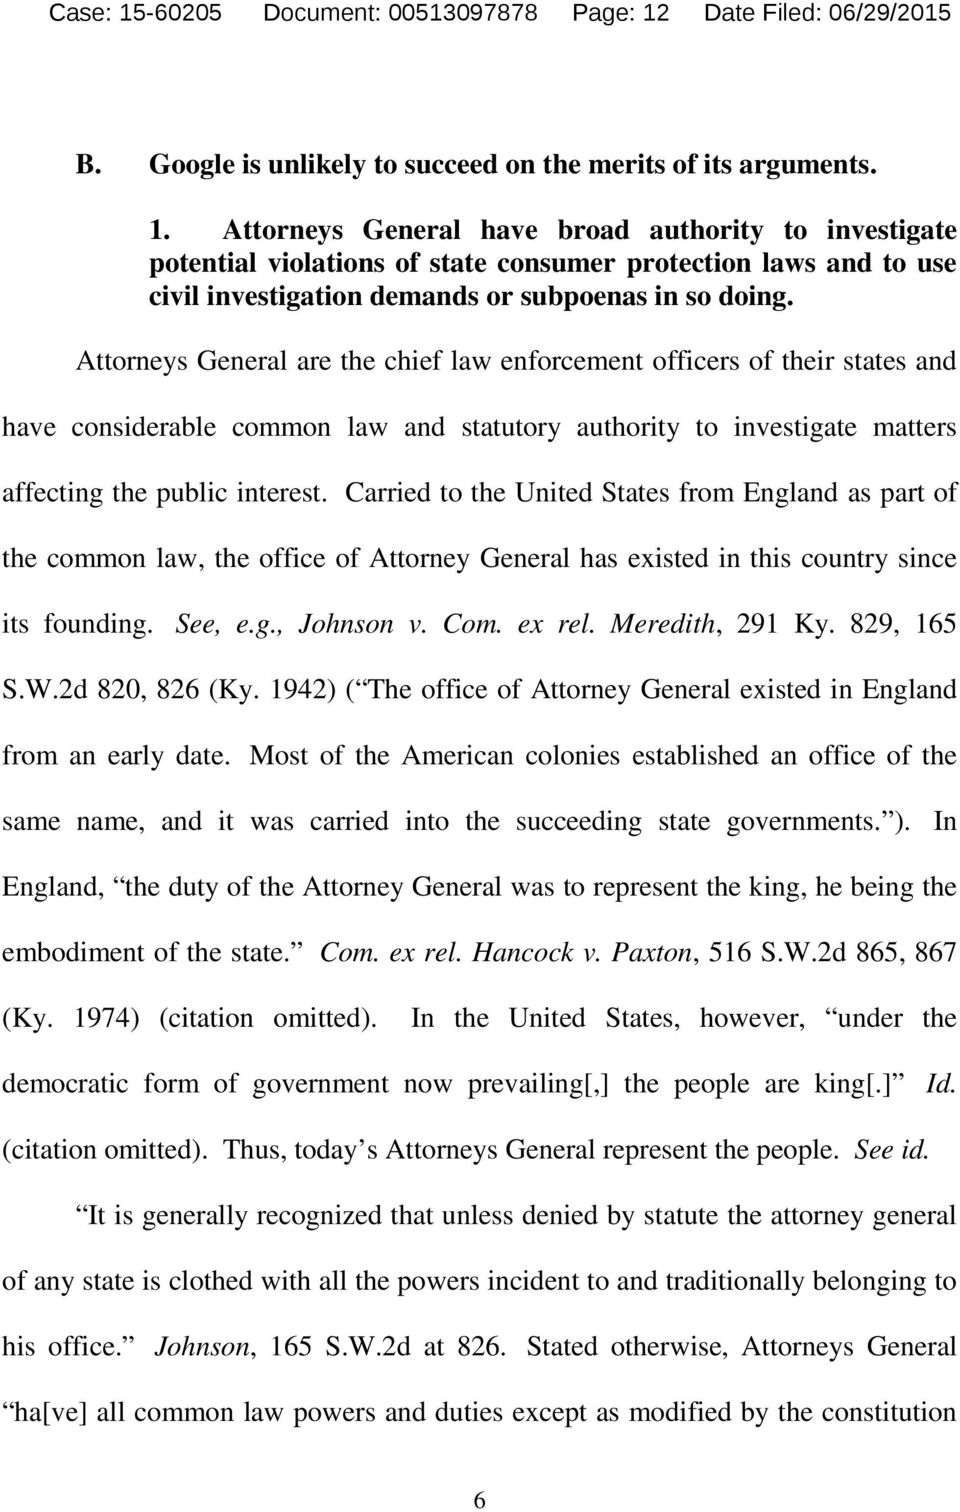 Carried to the United States from England as part of the common law, the office of Attorney General has existed in this country since its founding. See, e.g., Johnson v. Com. ex rel. Meredith, 291 Ky.